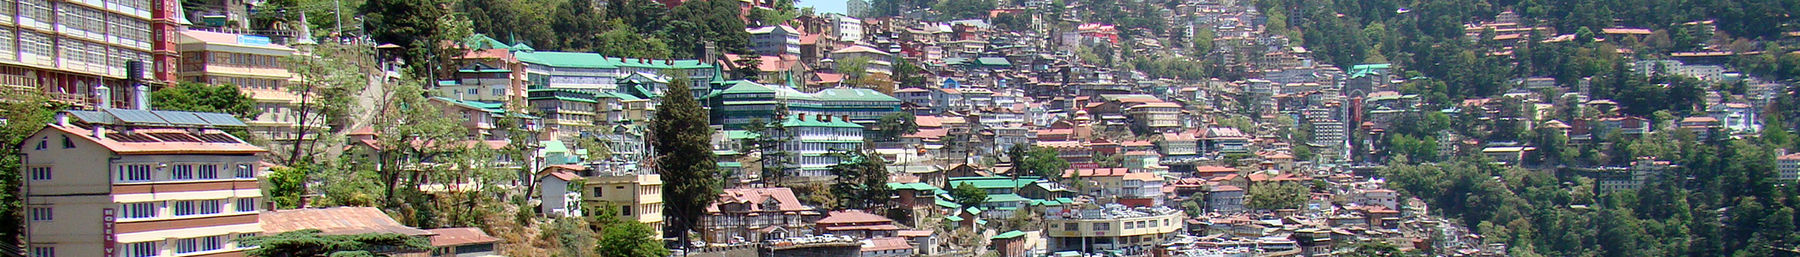 Shimla banner Southern Side of Ridge.jpg